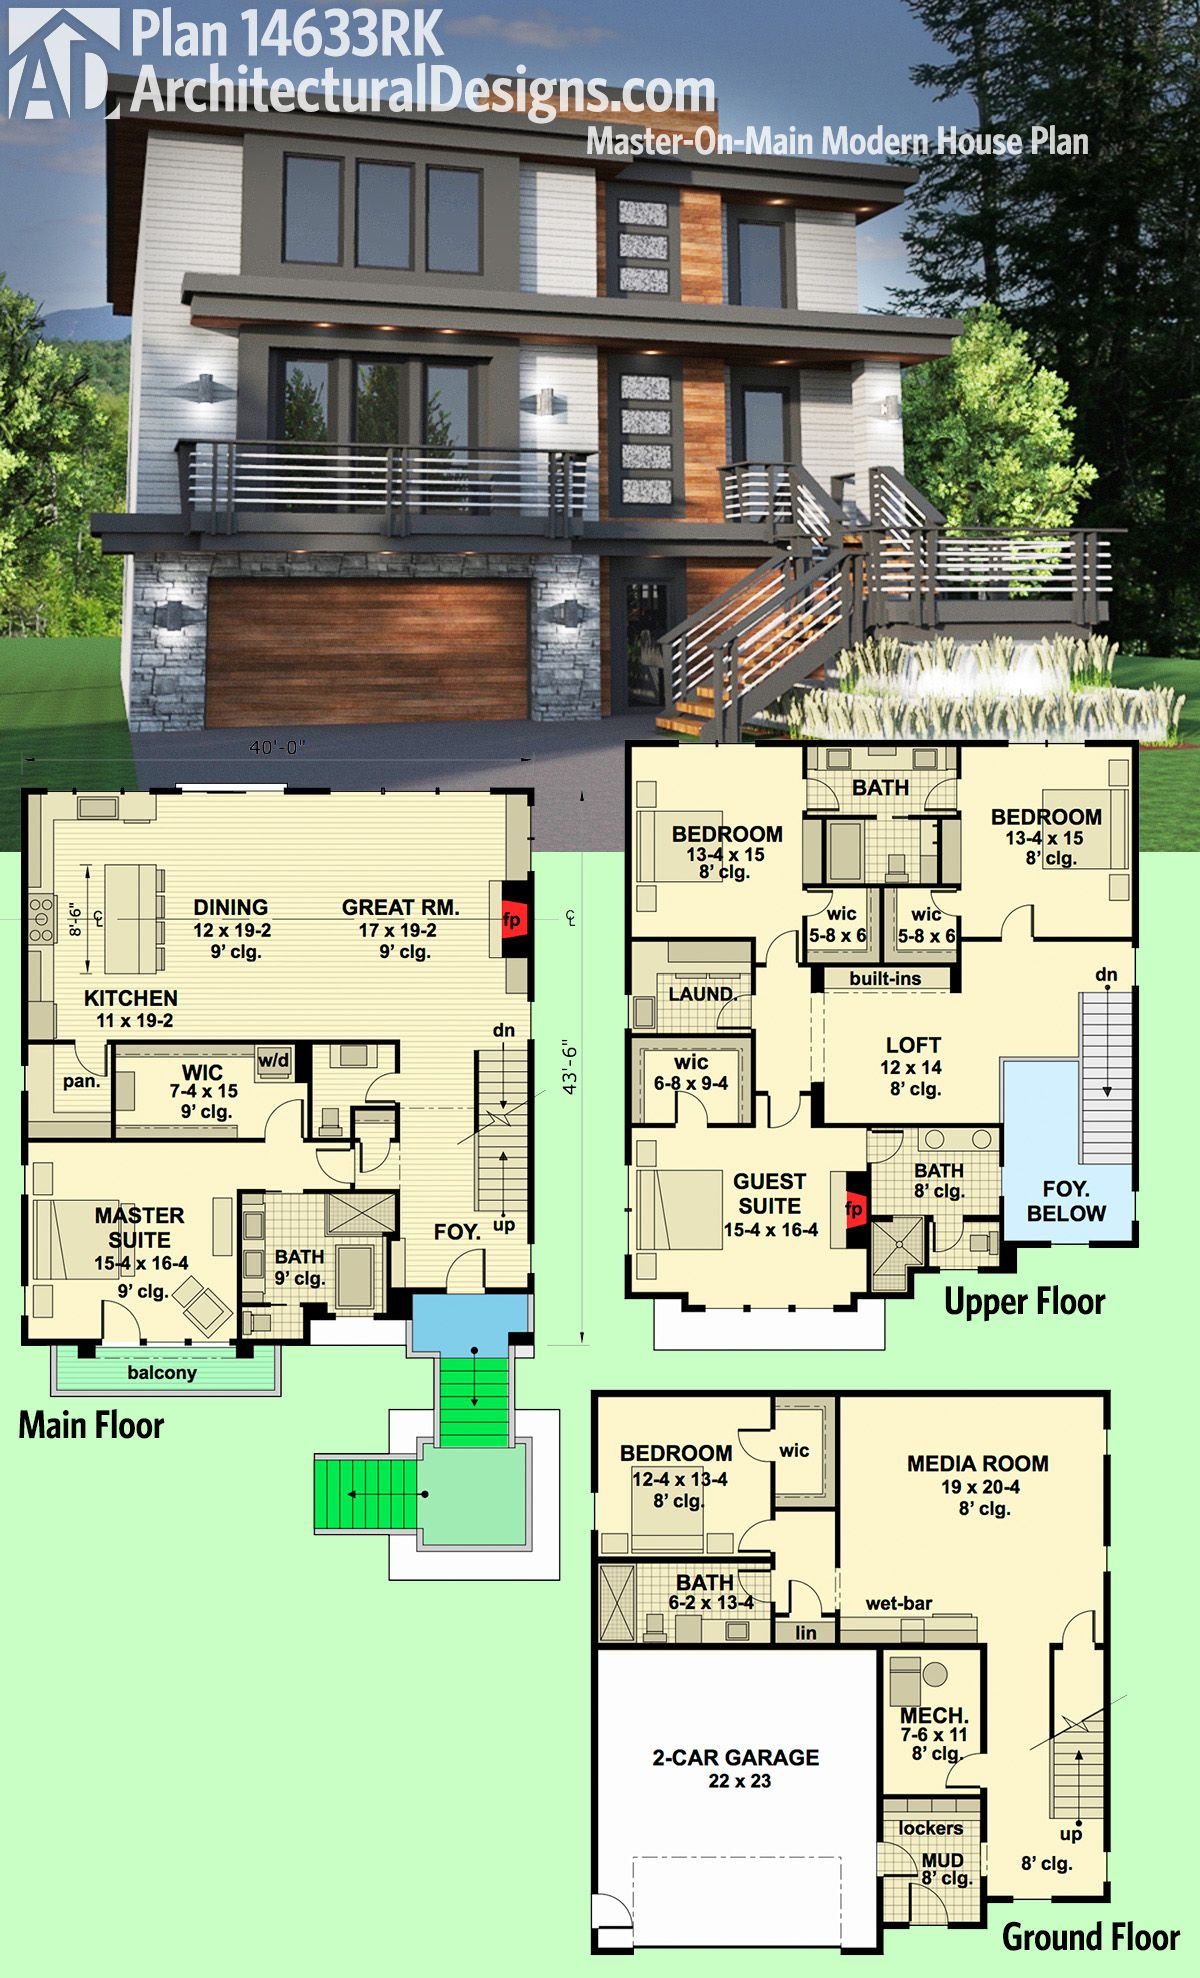 Plan 14633rk Master On Main Modern House Plan Modern